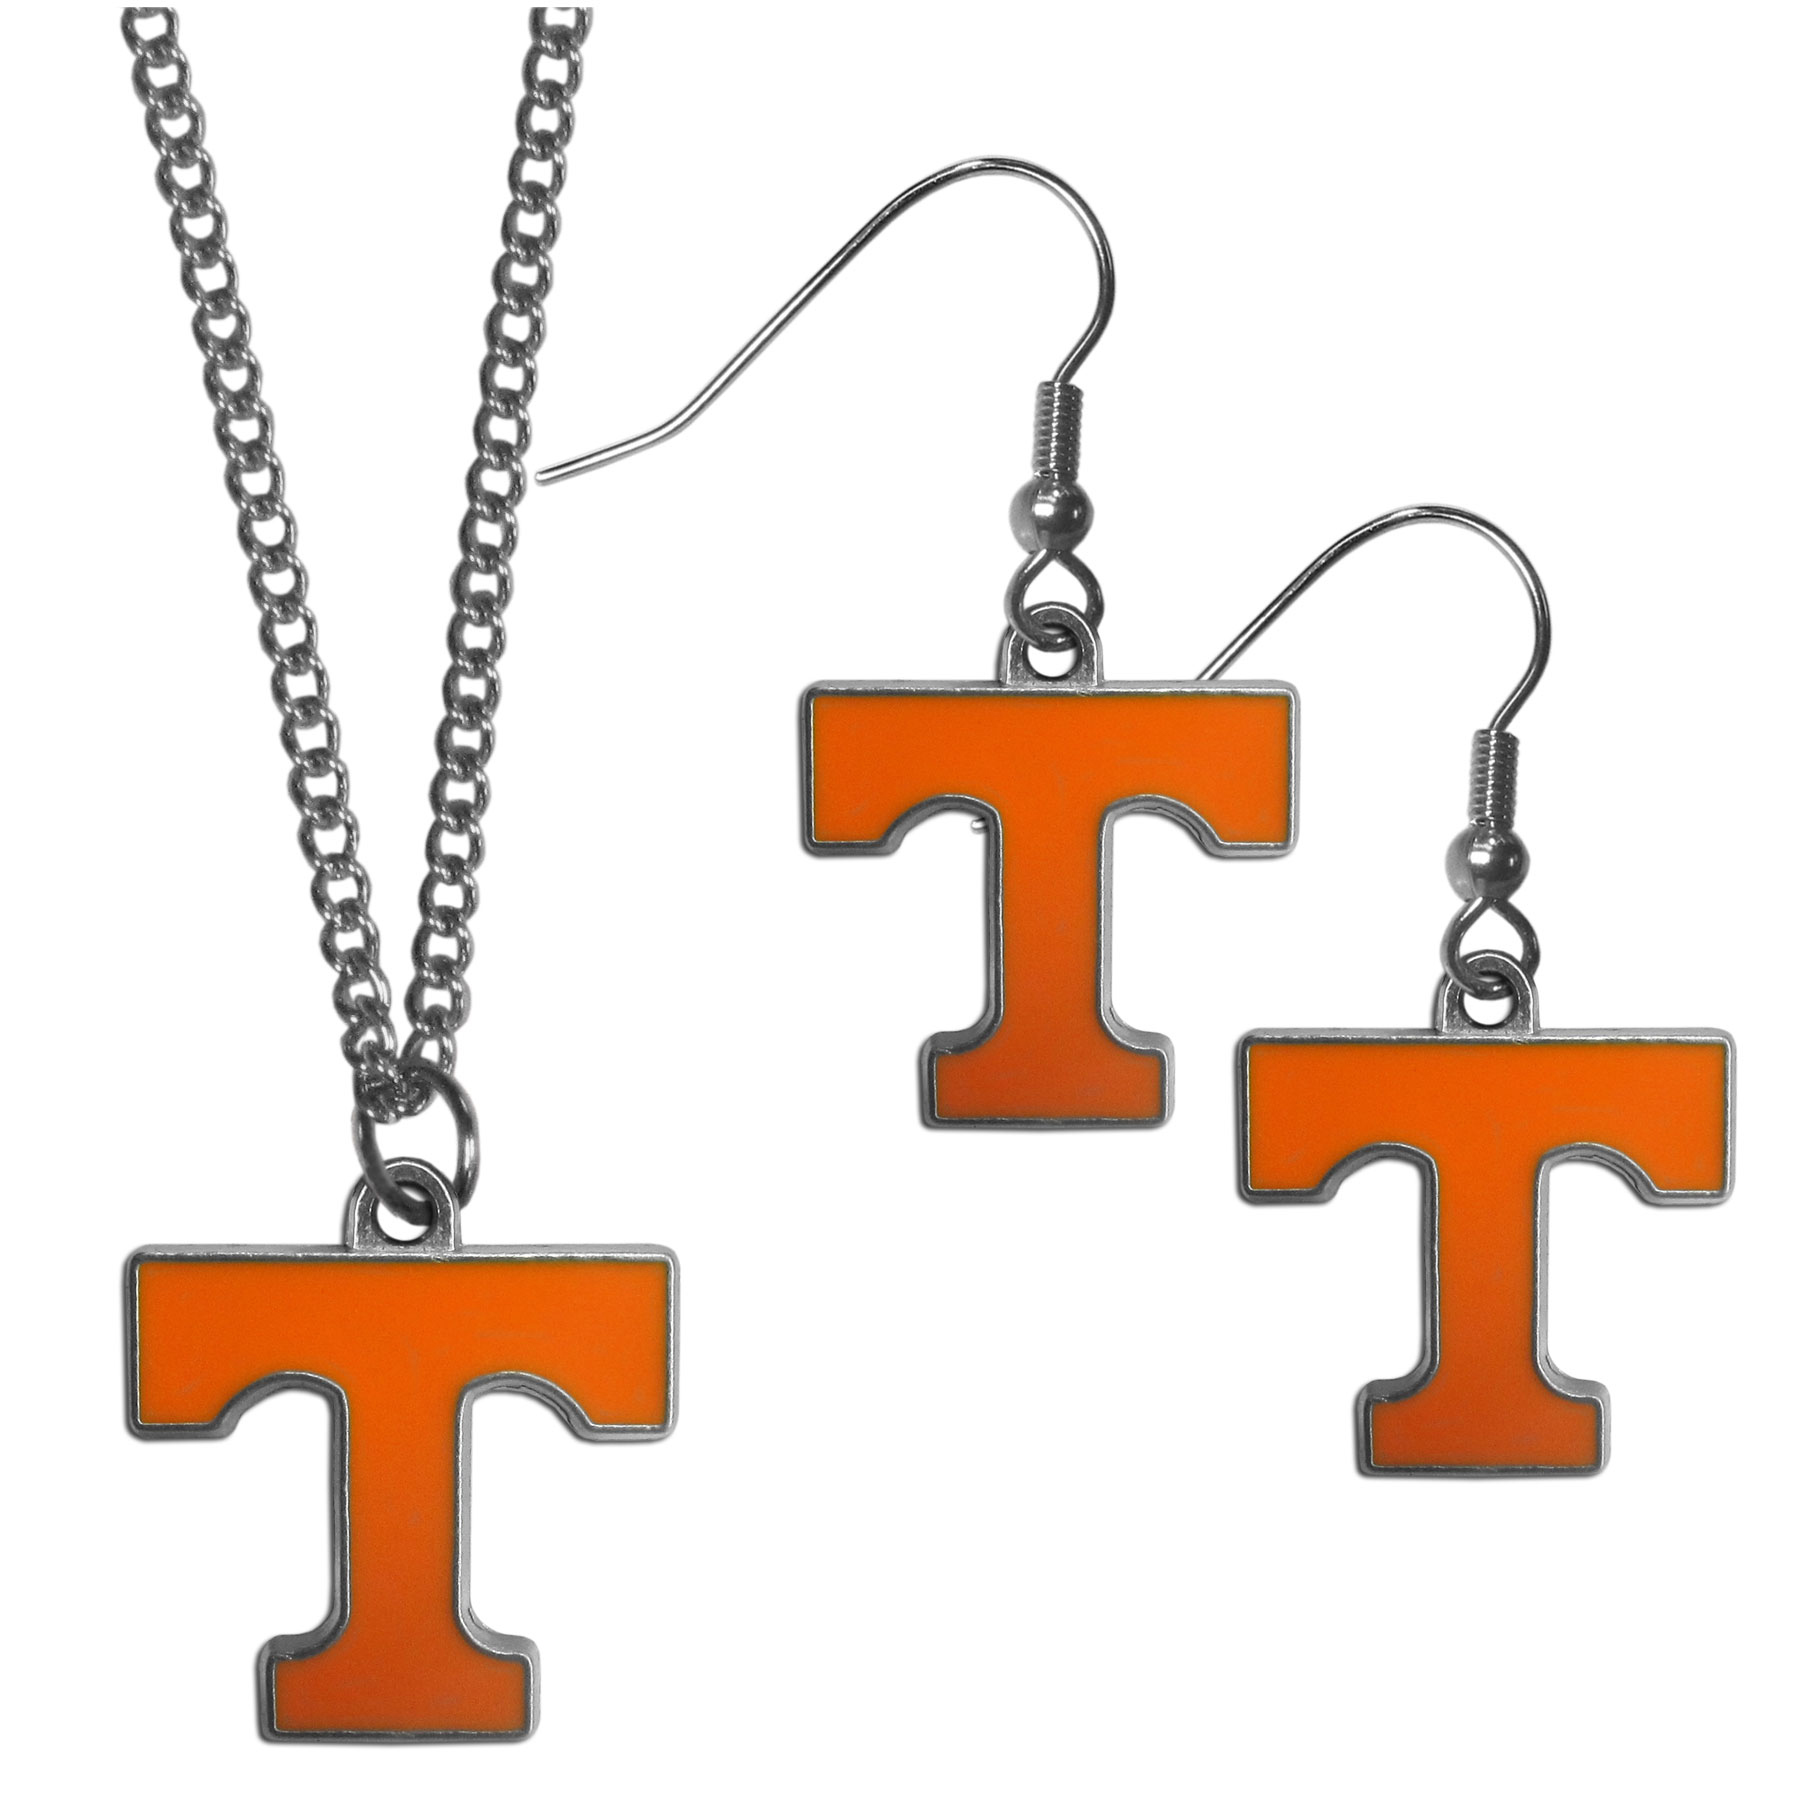 Tennessee Volunteers Dangle Earrings and Chain Necklace Set - This classic jewelry set contains are most popular Tennessee Volunteers dangle earrings and 22 inch chain necklace. The trendy, dangle earrings are lightweight and feature a fully cast metal team charm with enameled team colors. The matching necklace completes this fashion forward combo and is a spirited set that is perfect for game day but nice enough for everyday.